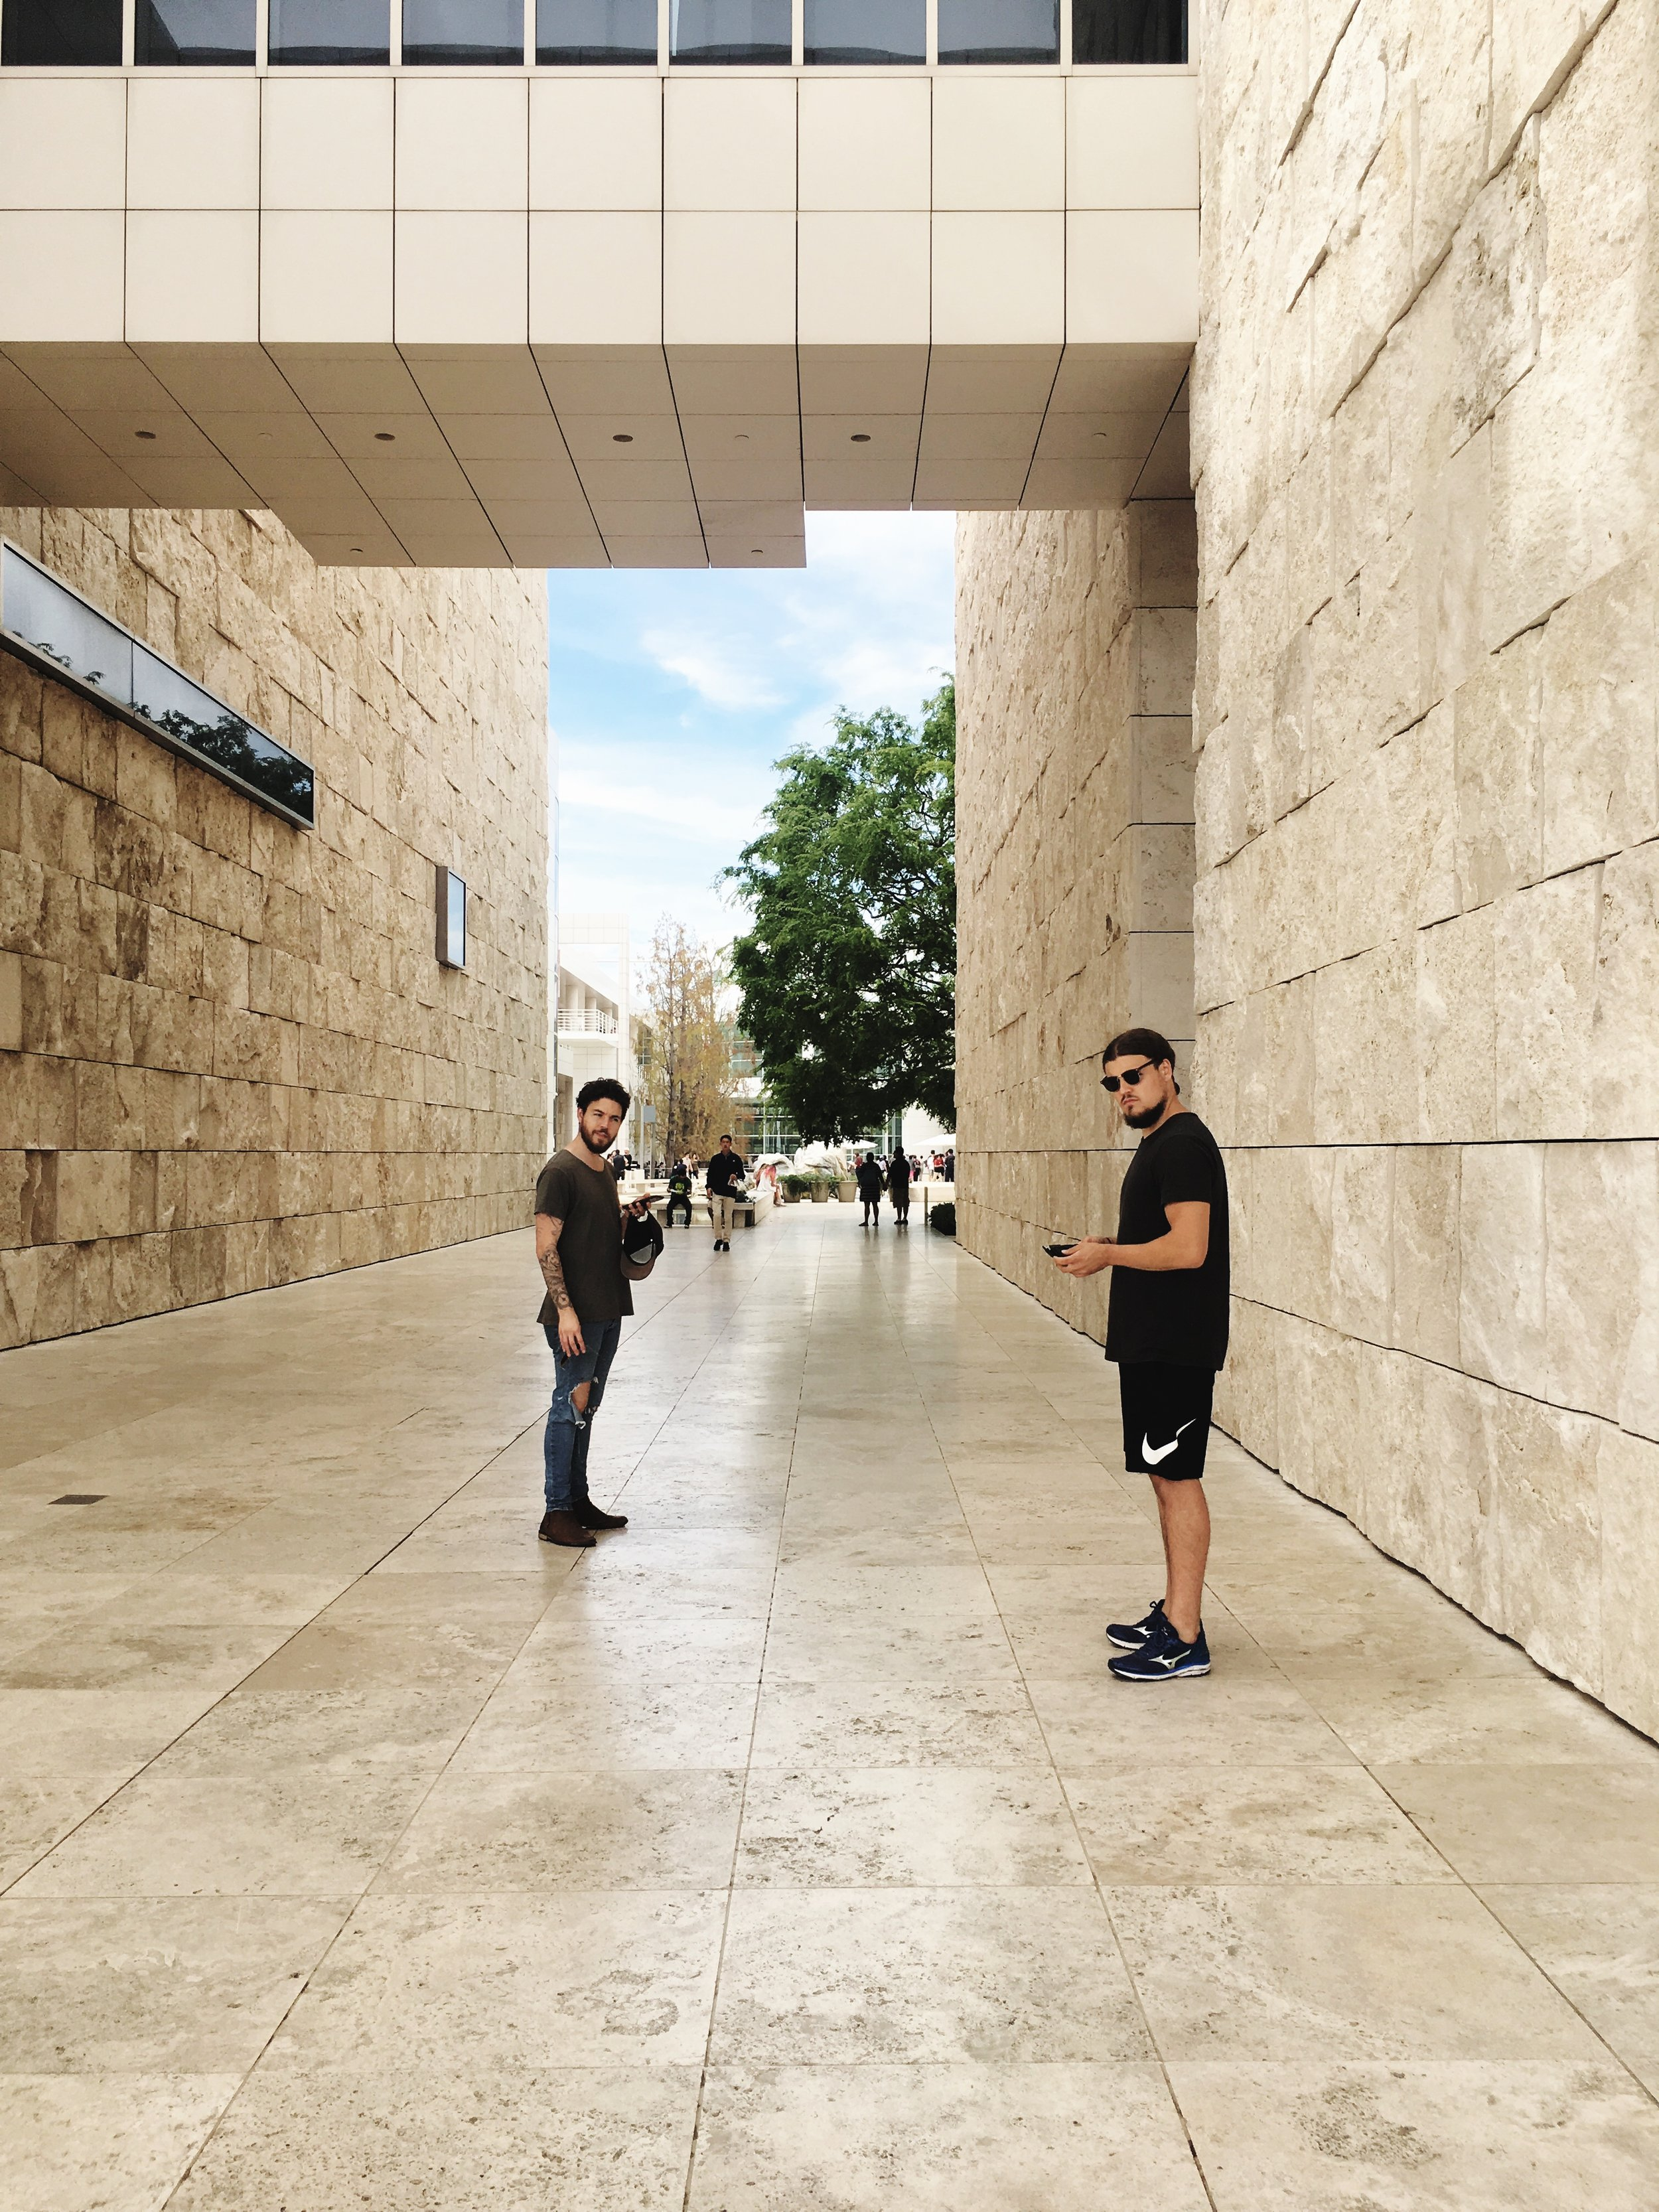 Matty and Caleb at The Getty.